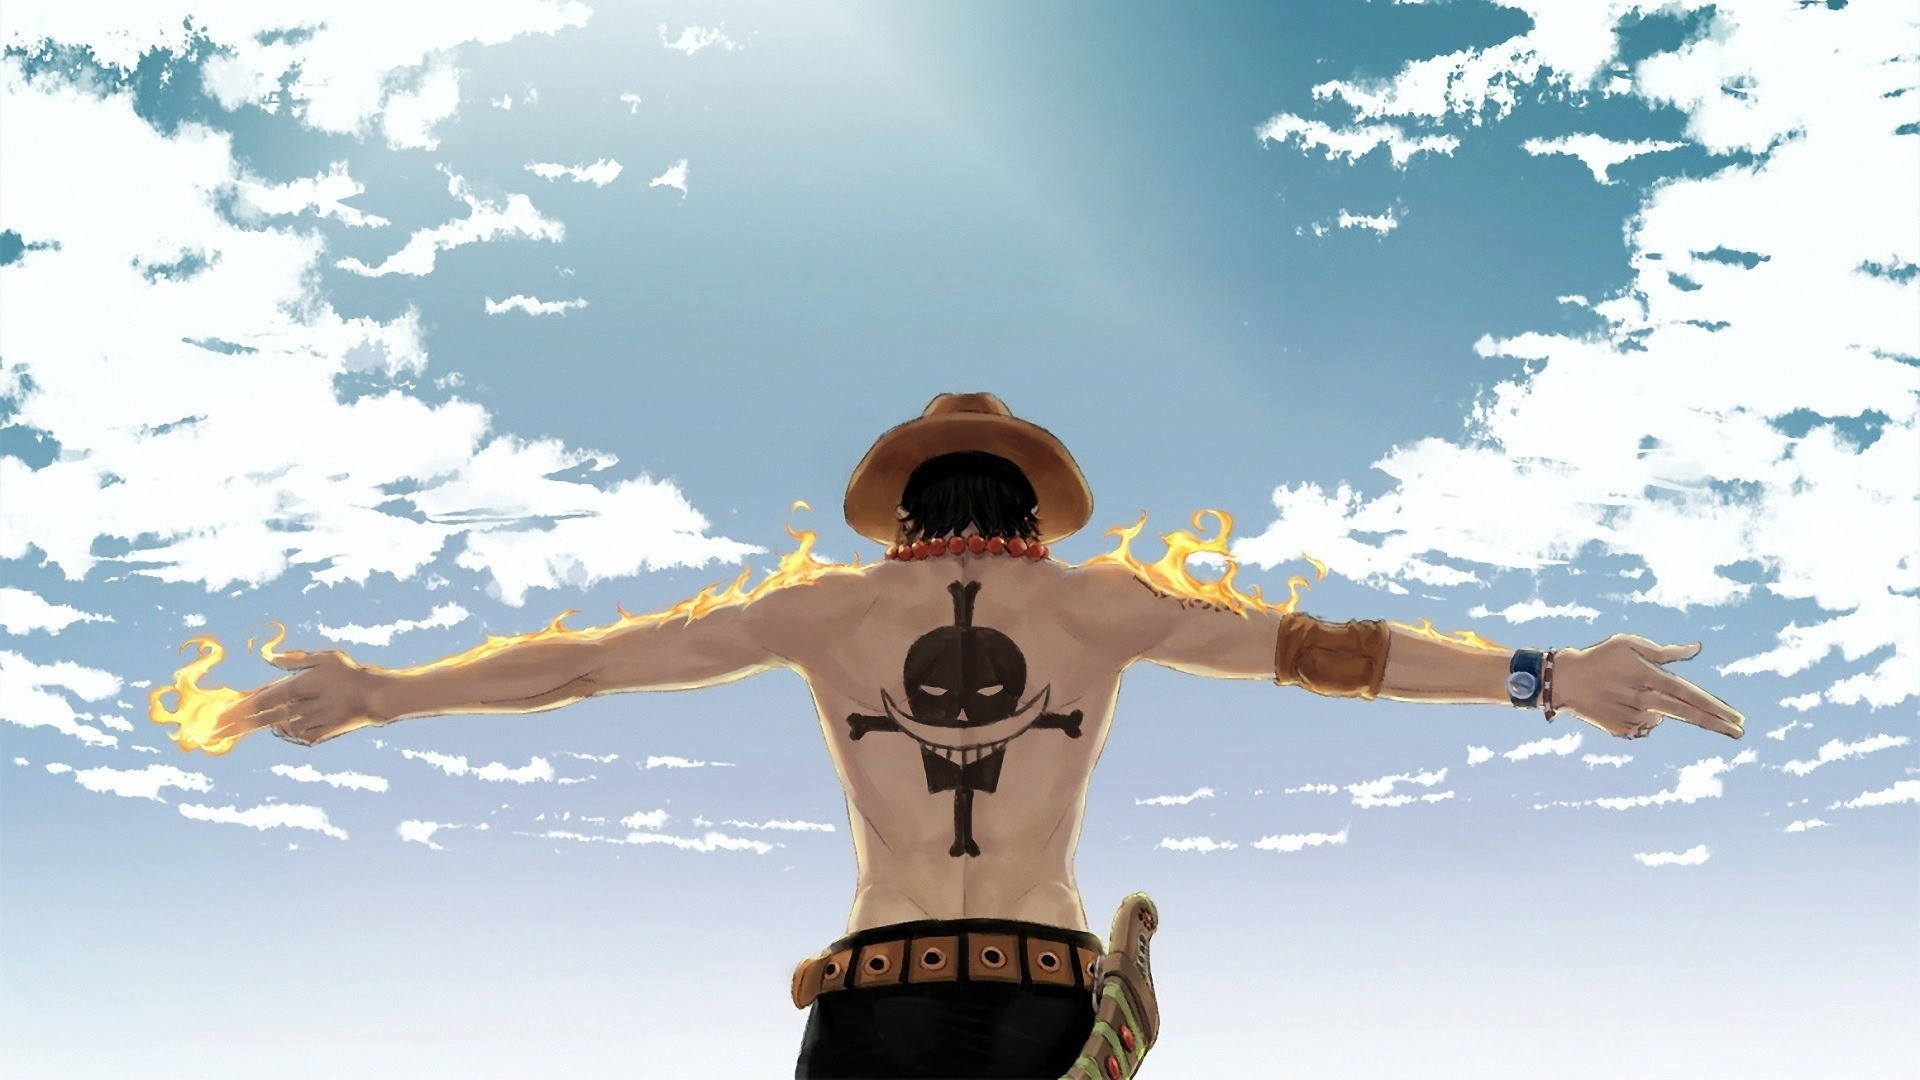 1920x1080 ...  High Resolution Best Anime One Piece Wallpaper HDFull Size.